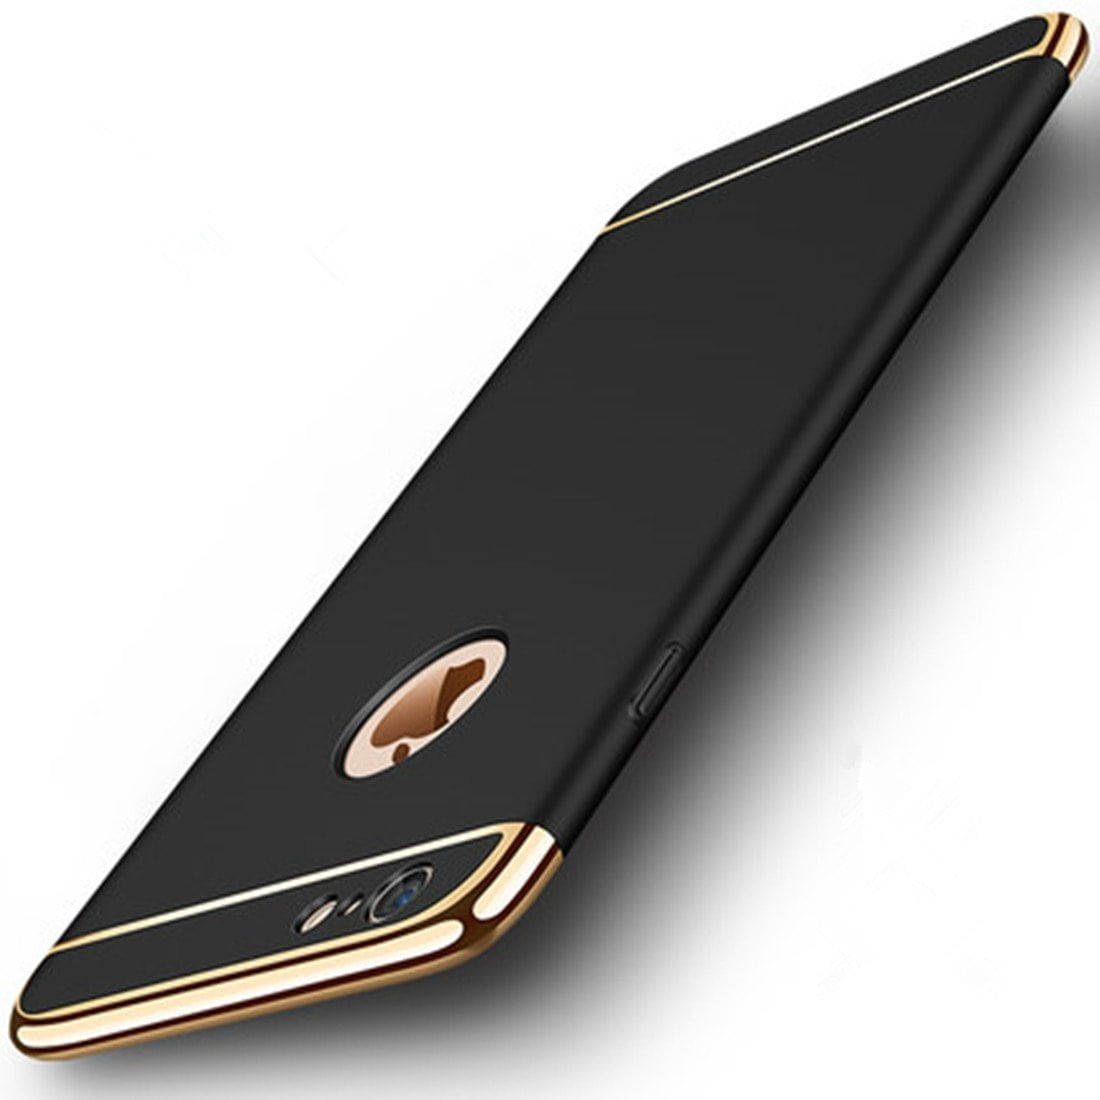 3 in 1 Ultra Thin Apple Iphone 6/6S Plus Case